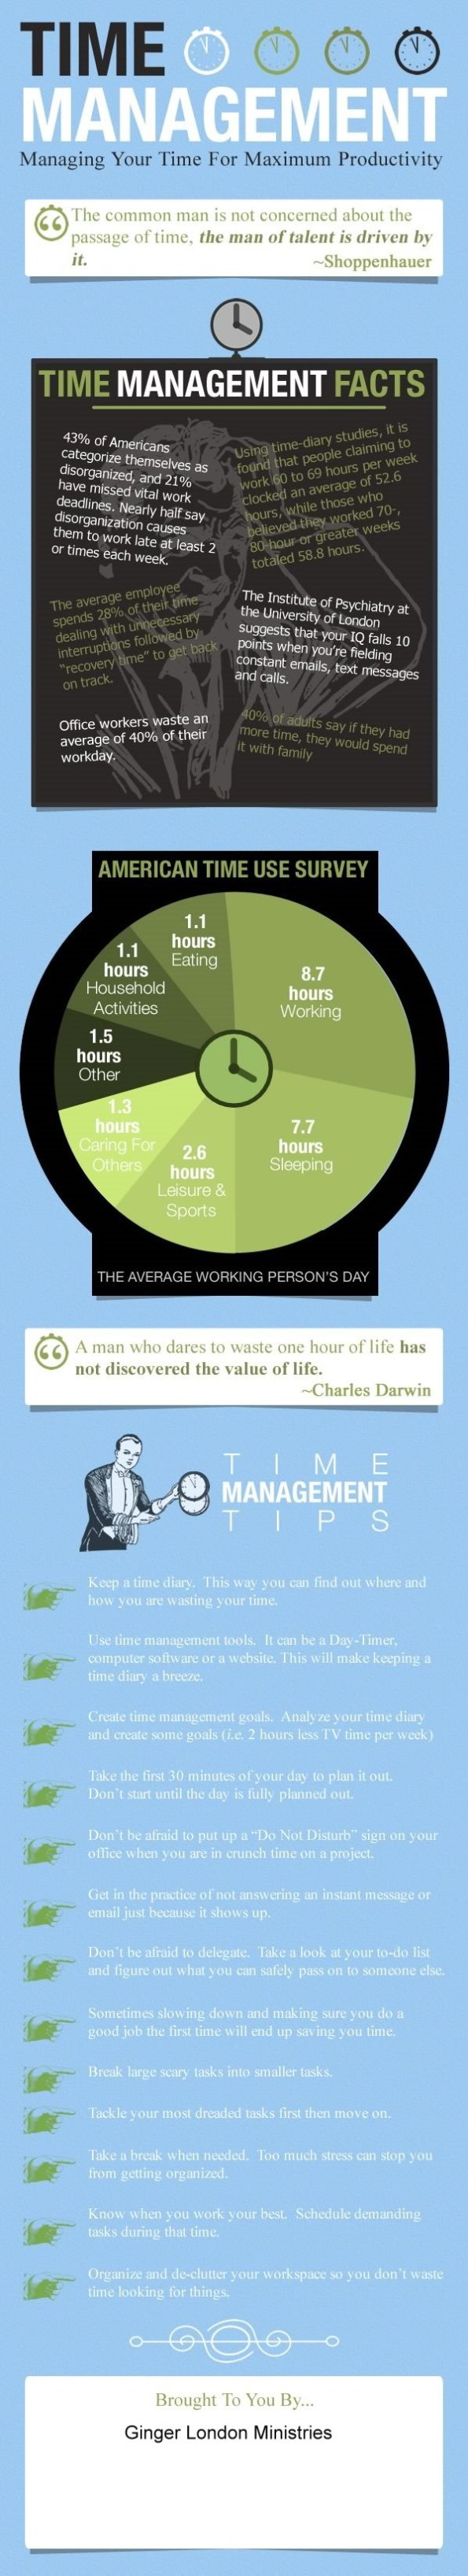 Time_Management_Infographic 2